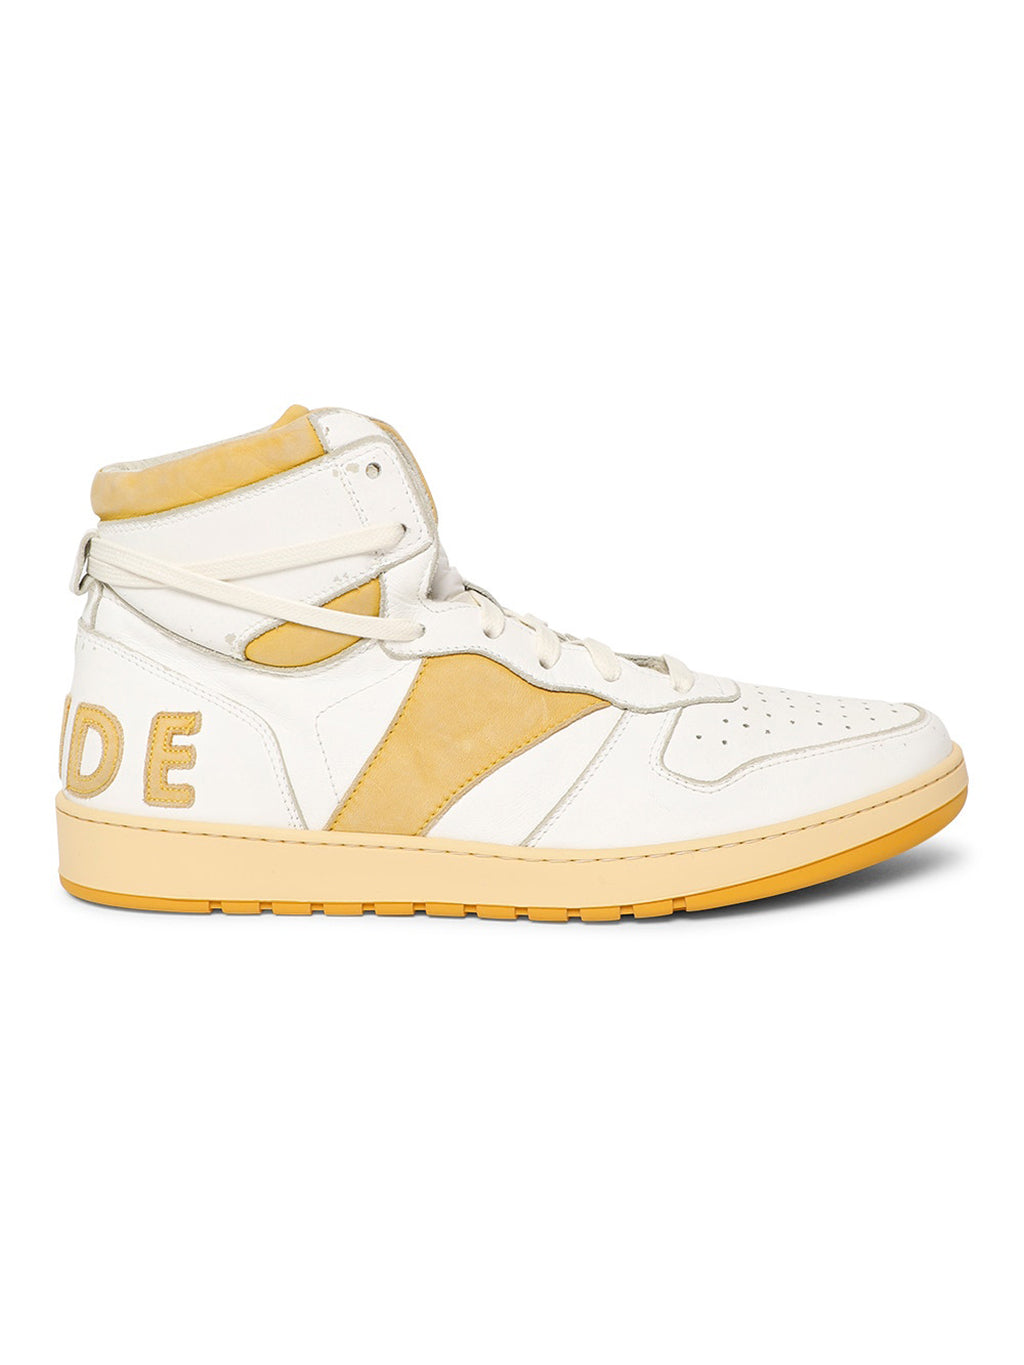 White & Yellow Rhecess High Top Sneakers